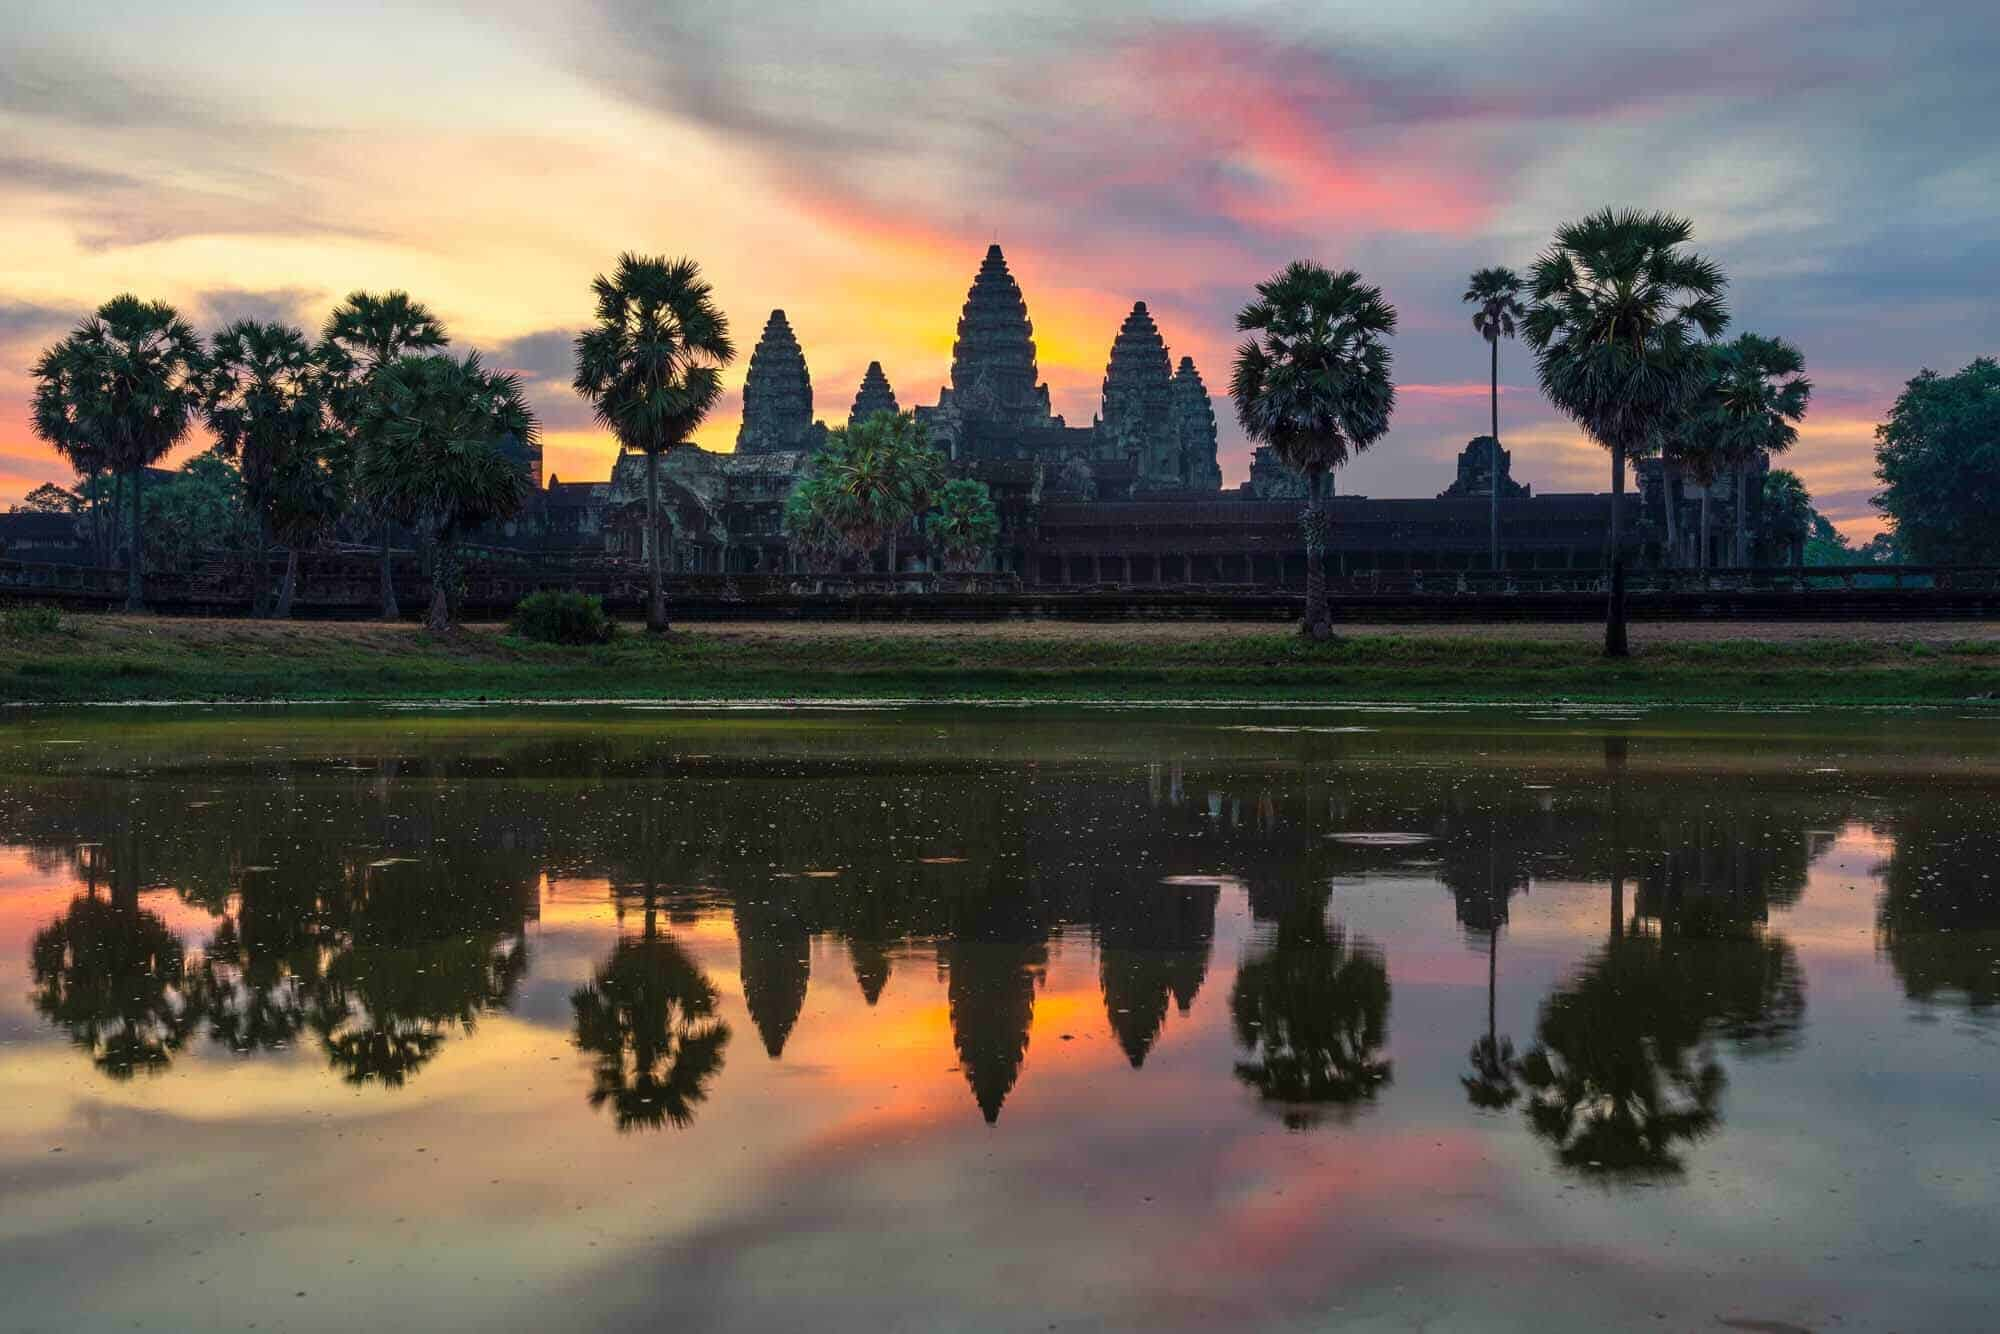 A photo of Angkor Wat Temple at sunrise reflected in water.